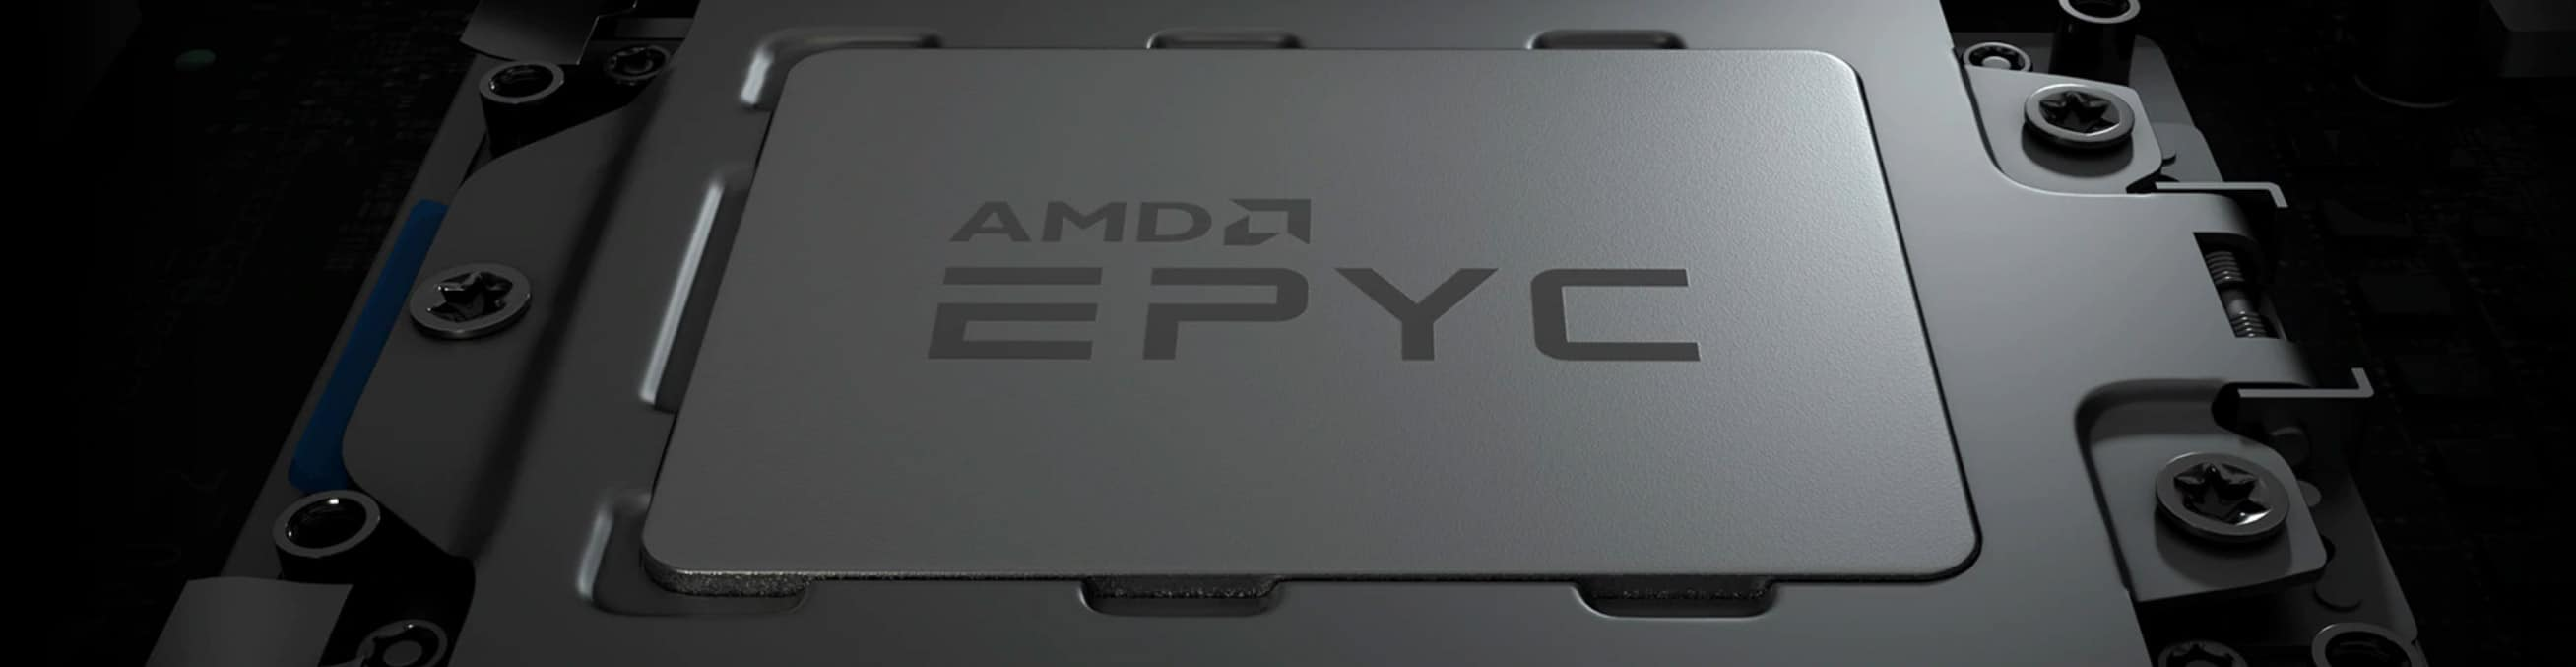 AMD EPYC 7002 Workstations